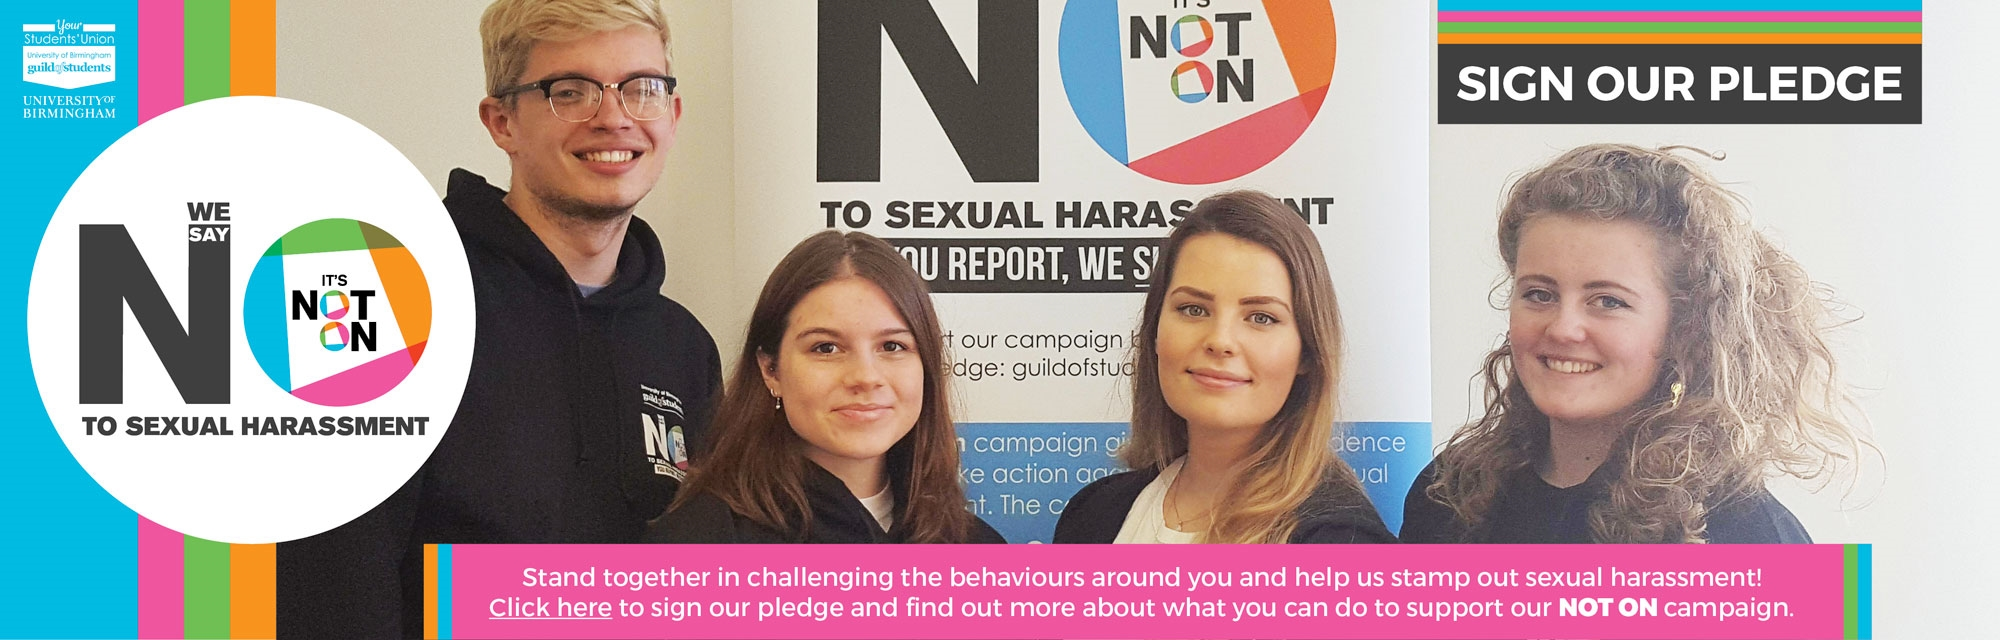 We say NO to sexual harrassment - stand together in challenging the behaviours around you and help u